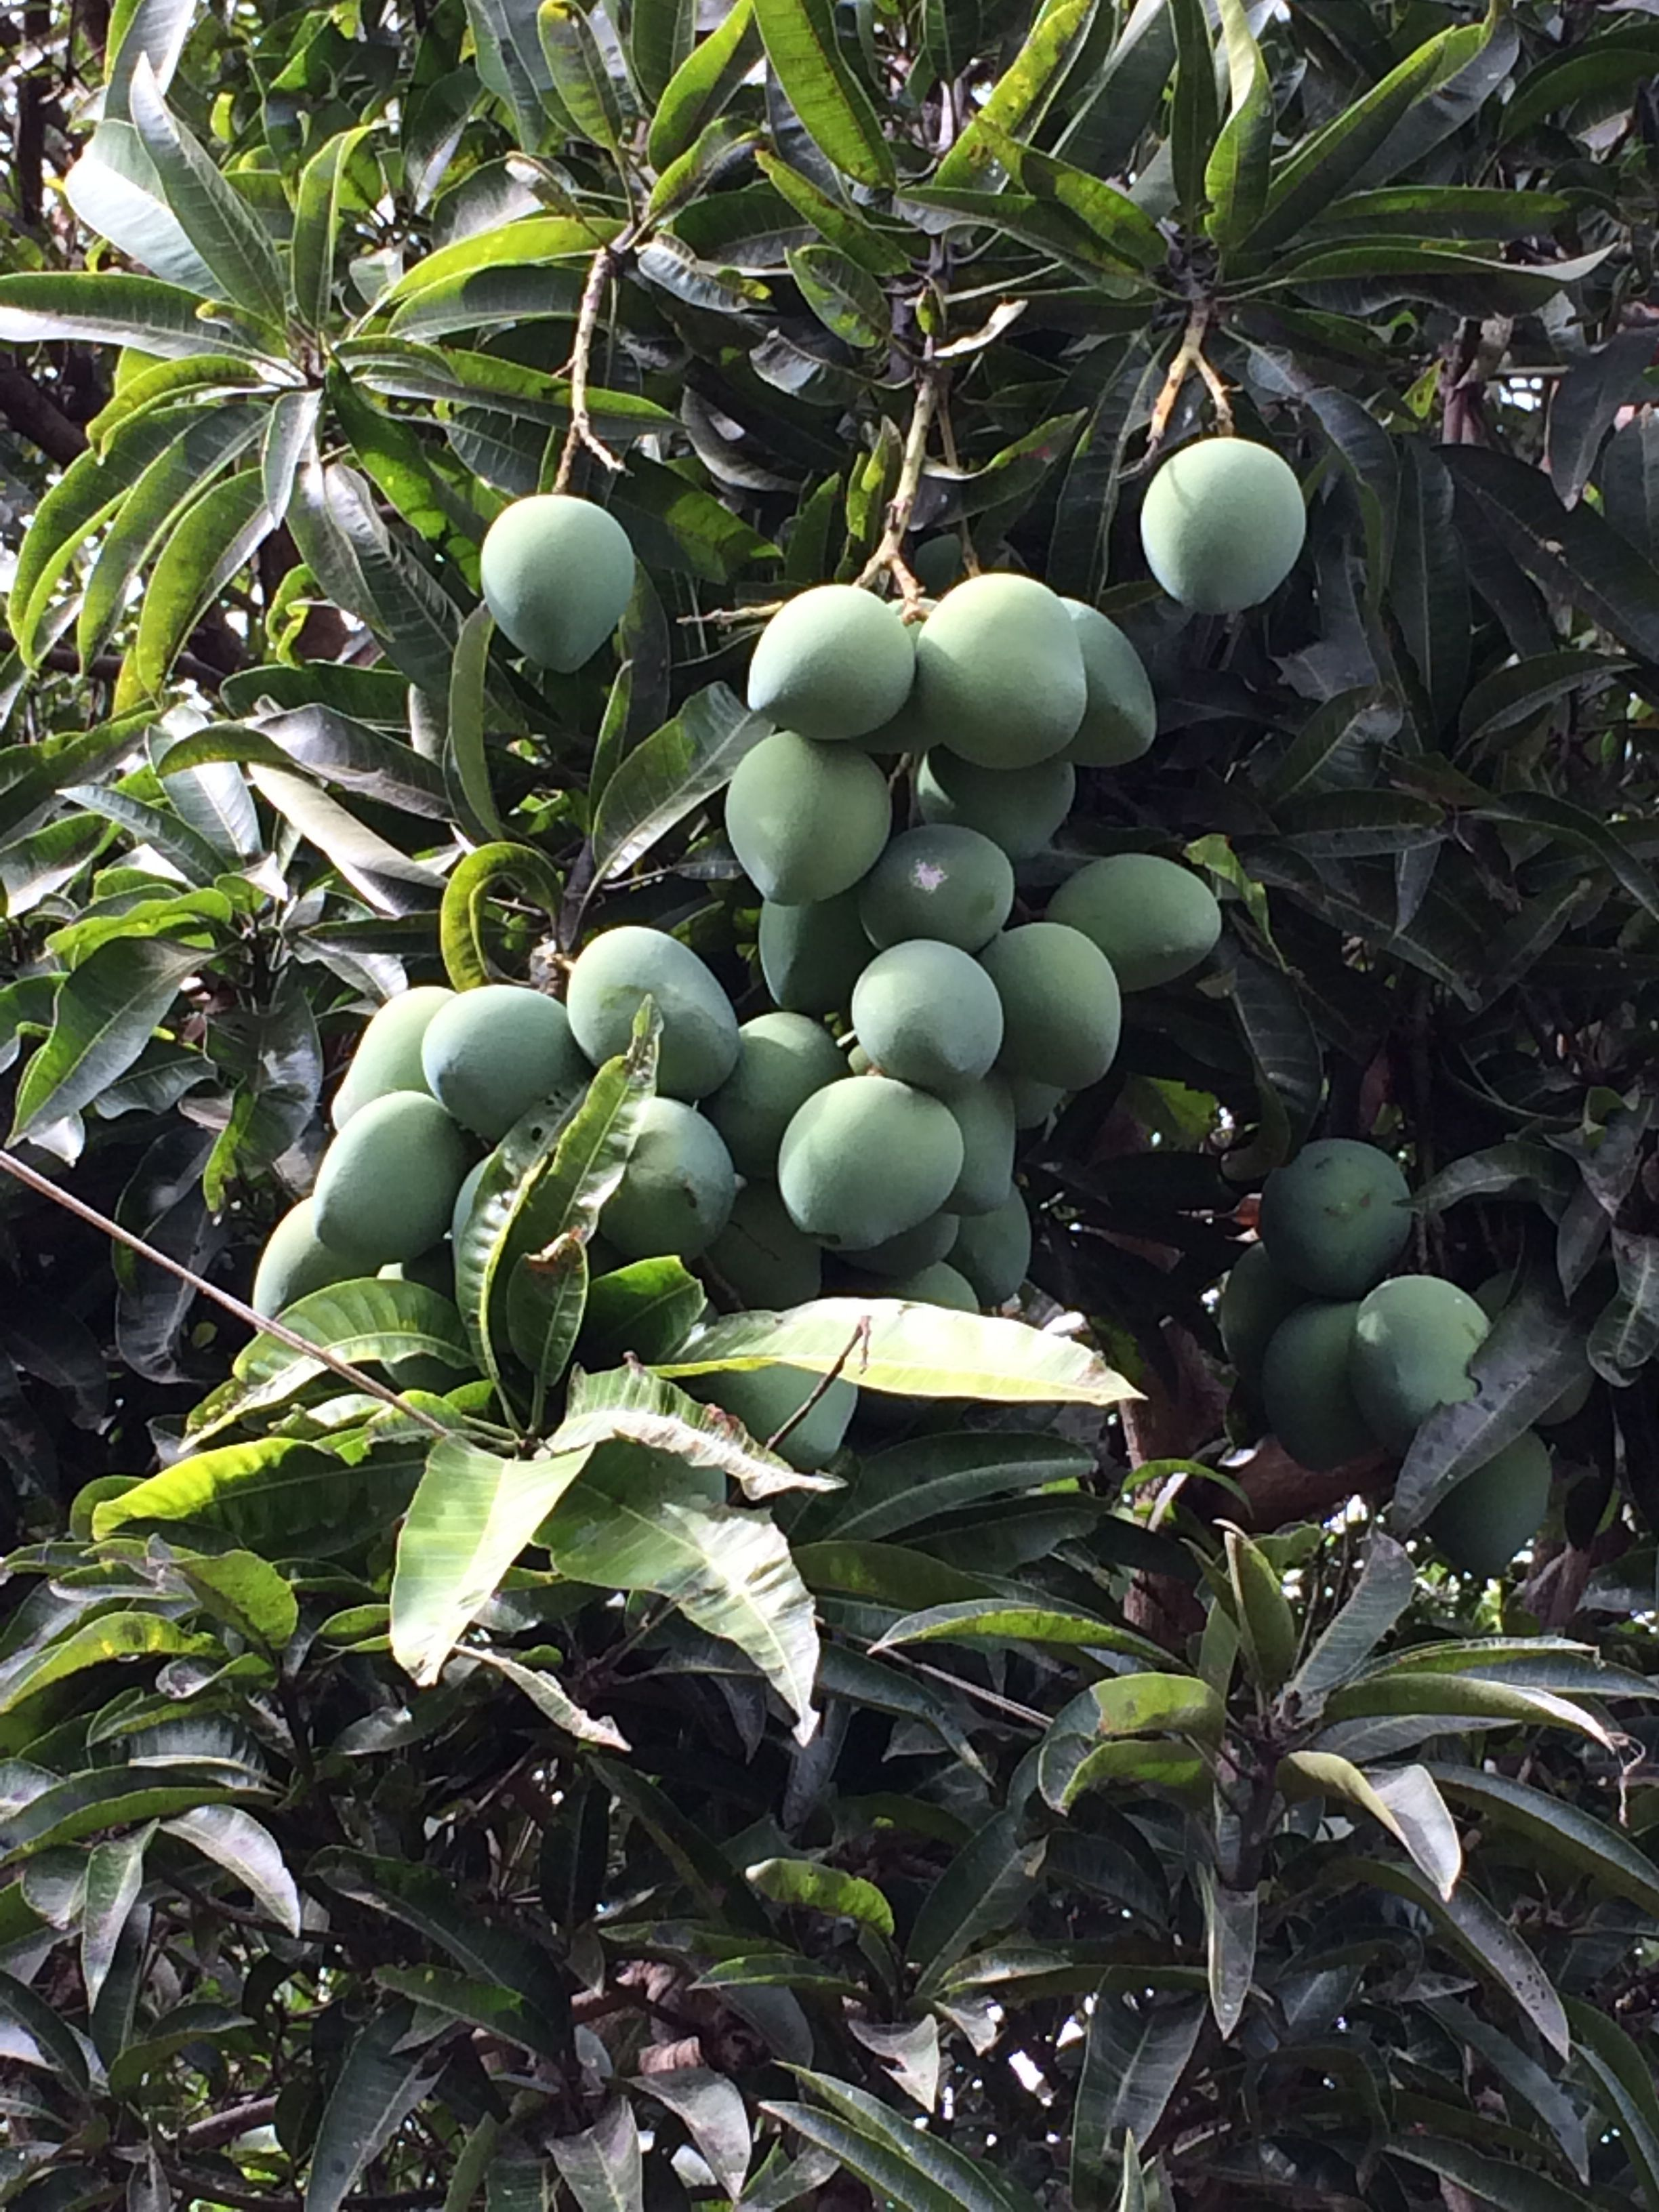 Philippine Indian Mangoes